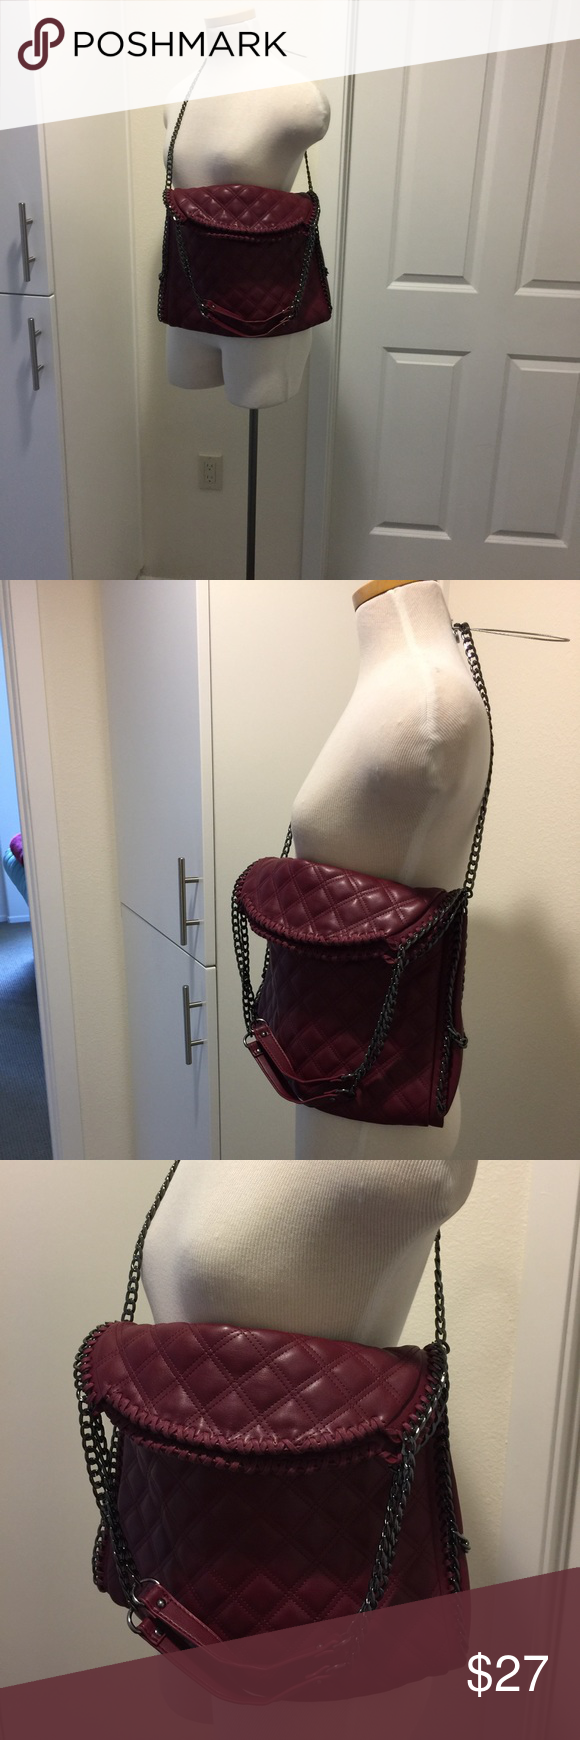 Steve Madden quilted 👜 2 handles Steve Madden handbag like new gently used great condition has pockets inside looks like a Stella McCartney bag . It is vegan material too . Has both short and long chain , non smoking home 🏡 Steve Madden Bags Shoulder Bags